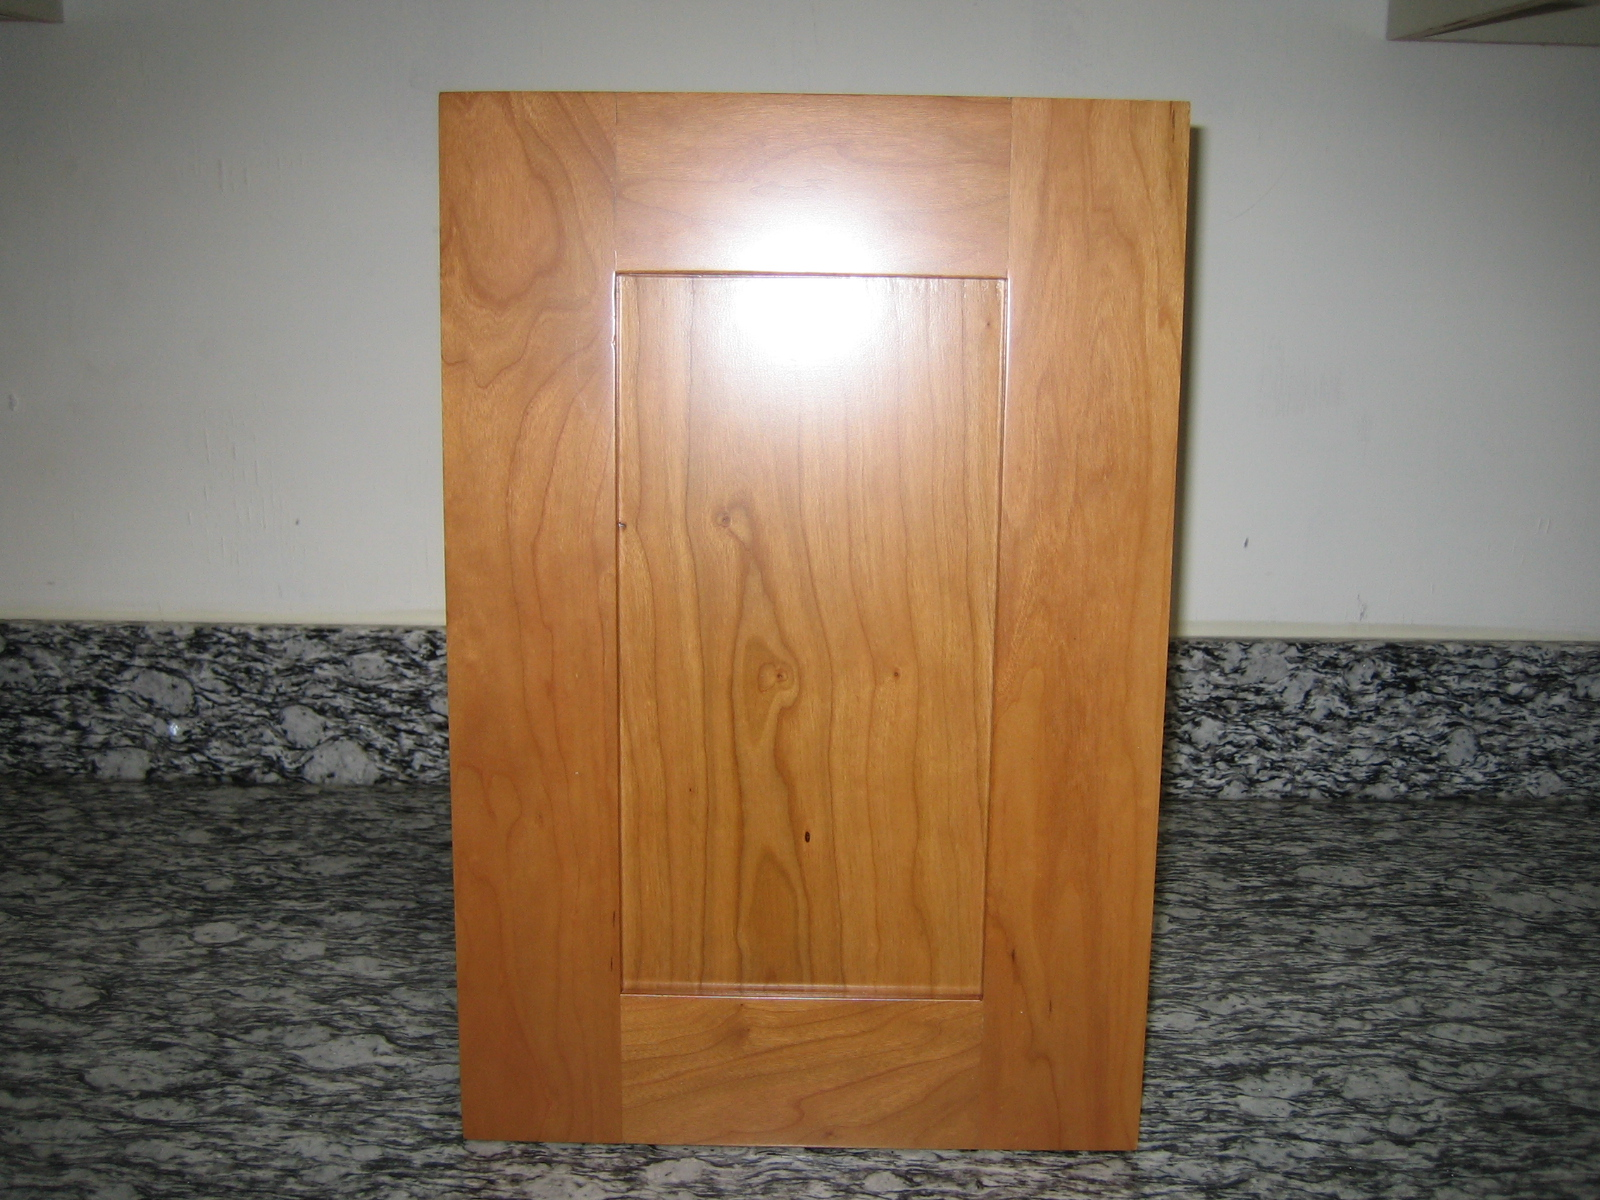 Cherry Shaker Kitchen Cabinets Rta Cabinet Broker 1a North American Cherry Shaker Kitchen Cabinets